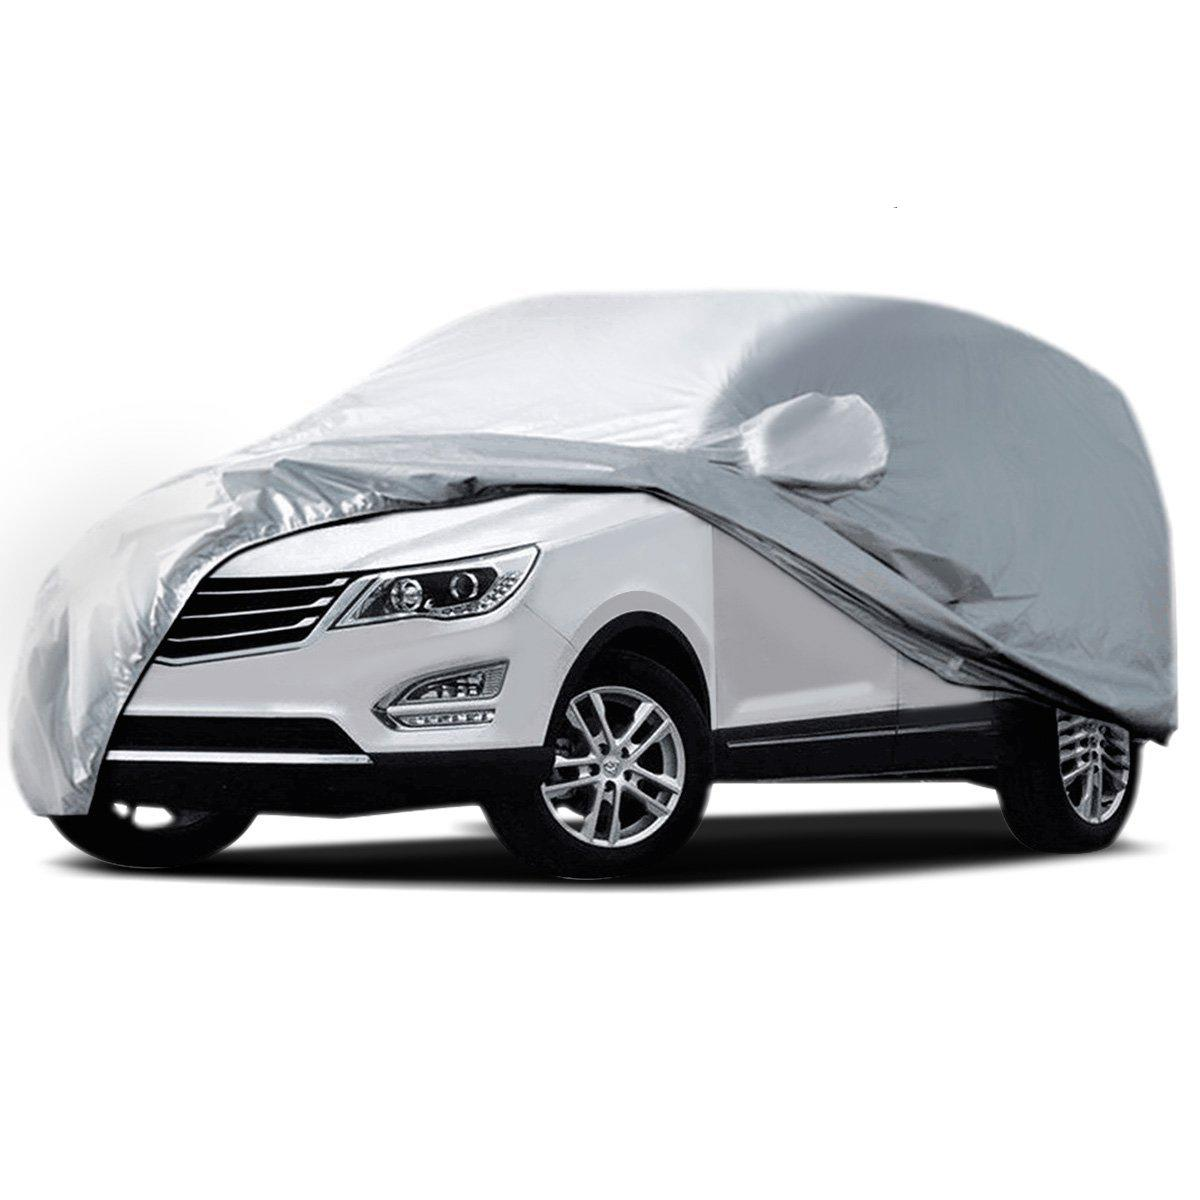 Car Covers for sale - Waterproof Car Cover online brands, prices ...